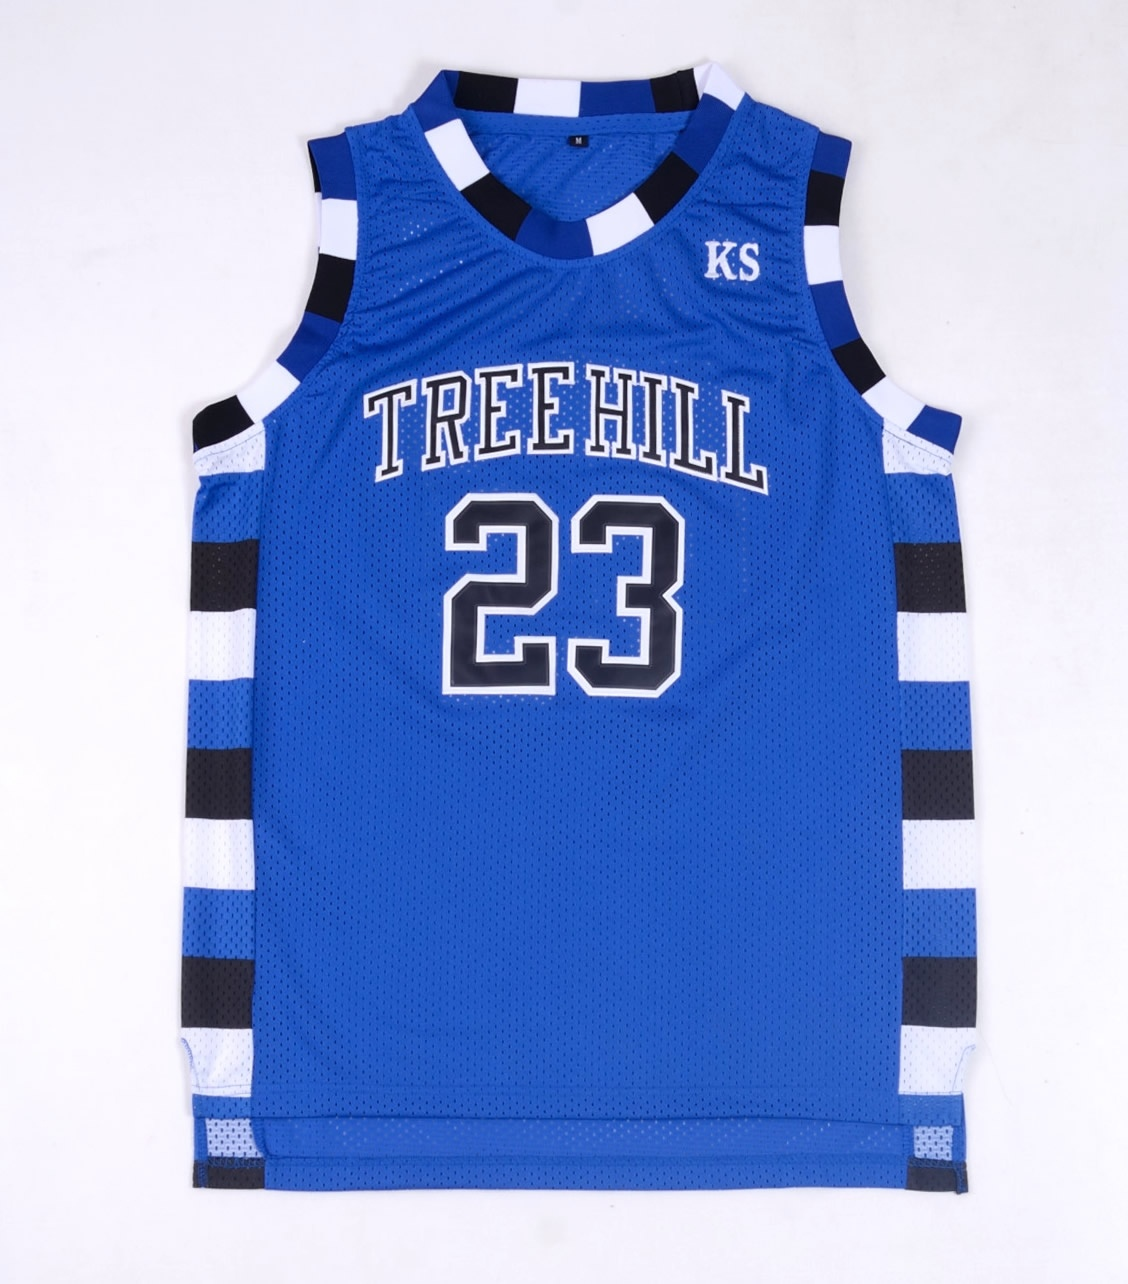 Nathan Scott 23 One Tree Hill Ravens Basketball Jersey Blue-in Basketball  Jerseys from Sports   Entertainment on Aliexpress.com  ab1ee110a